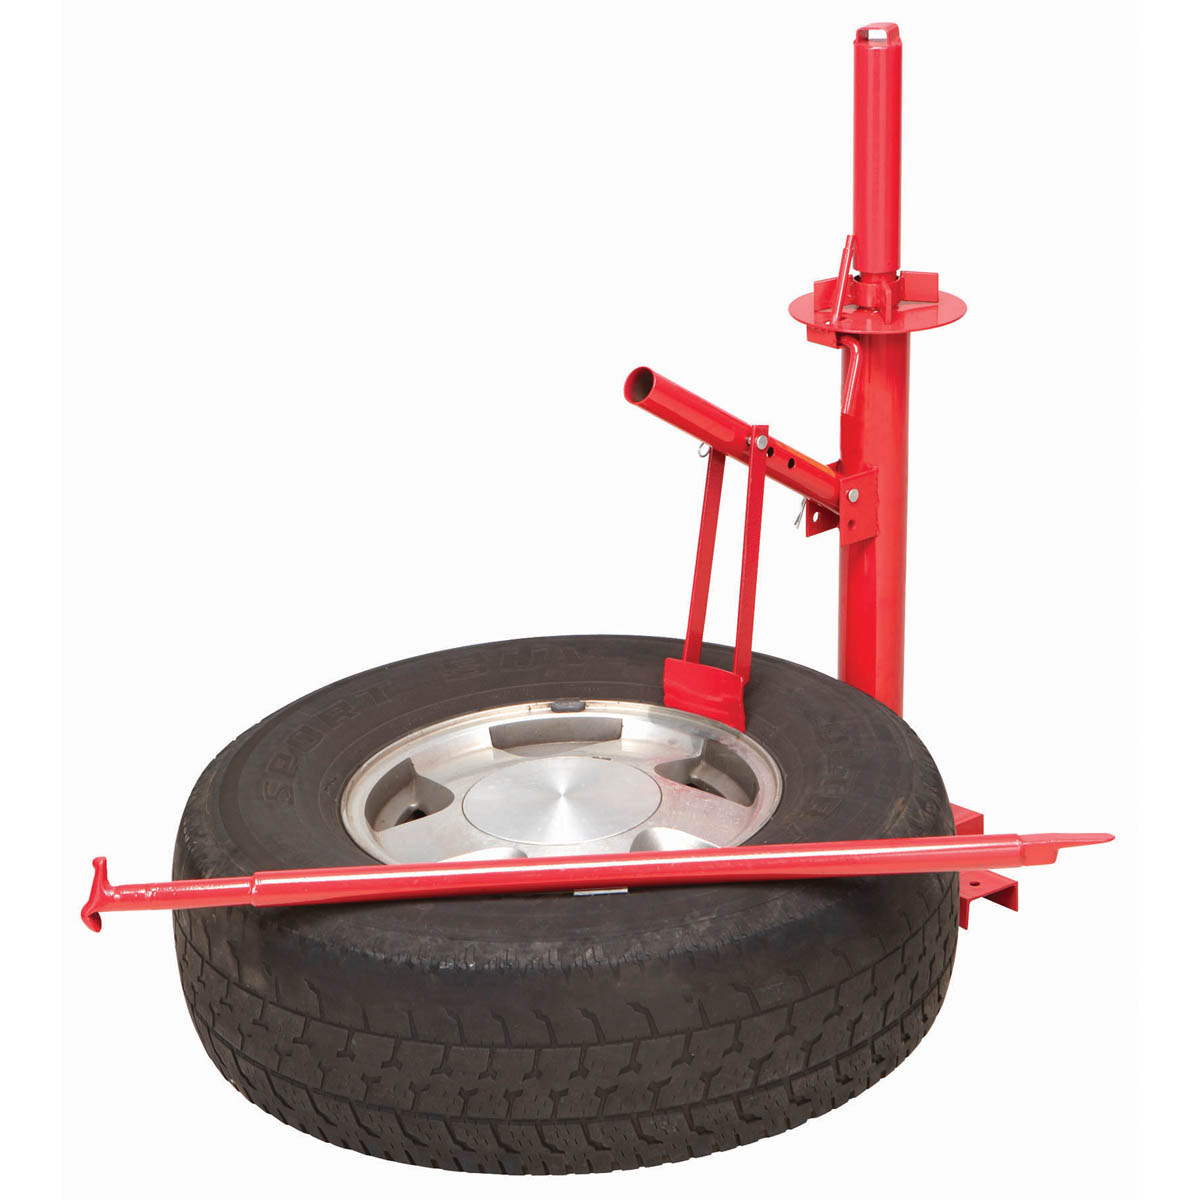 manual tire changer rh harborfreight com manual tire changer tool manual tire changer tool bar